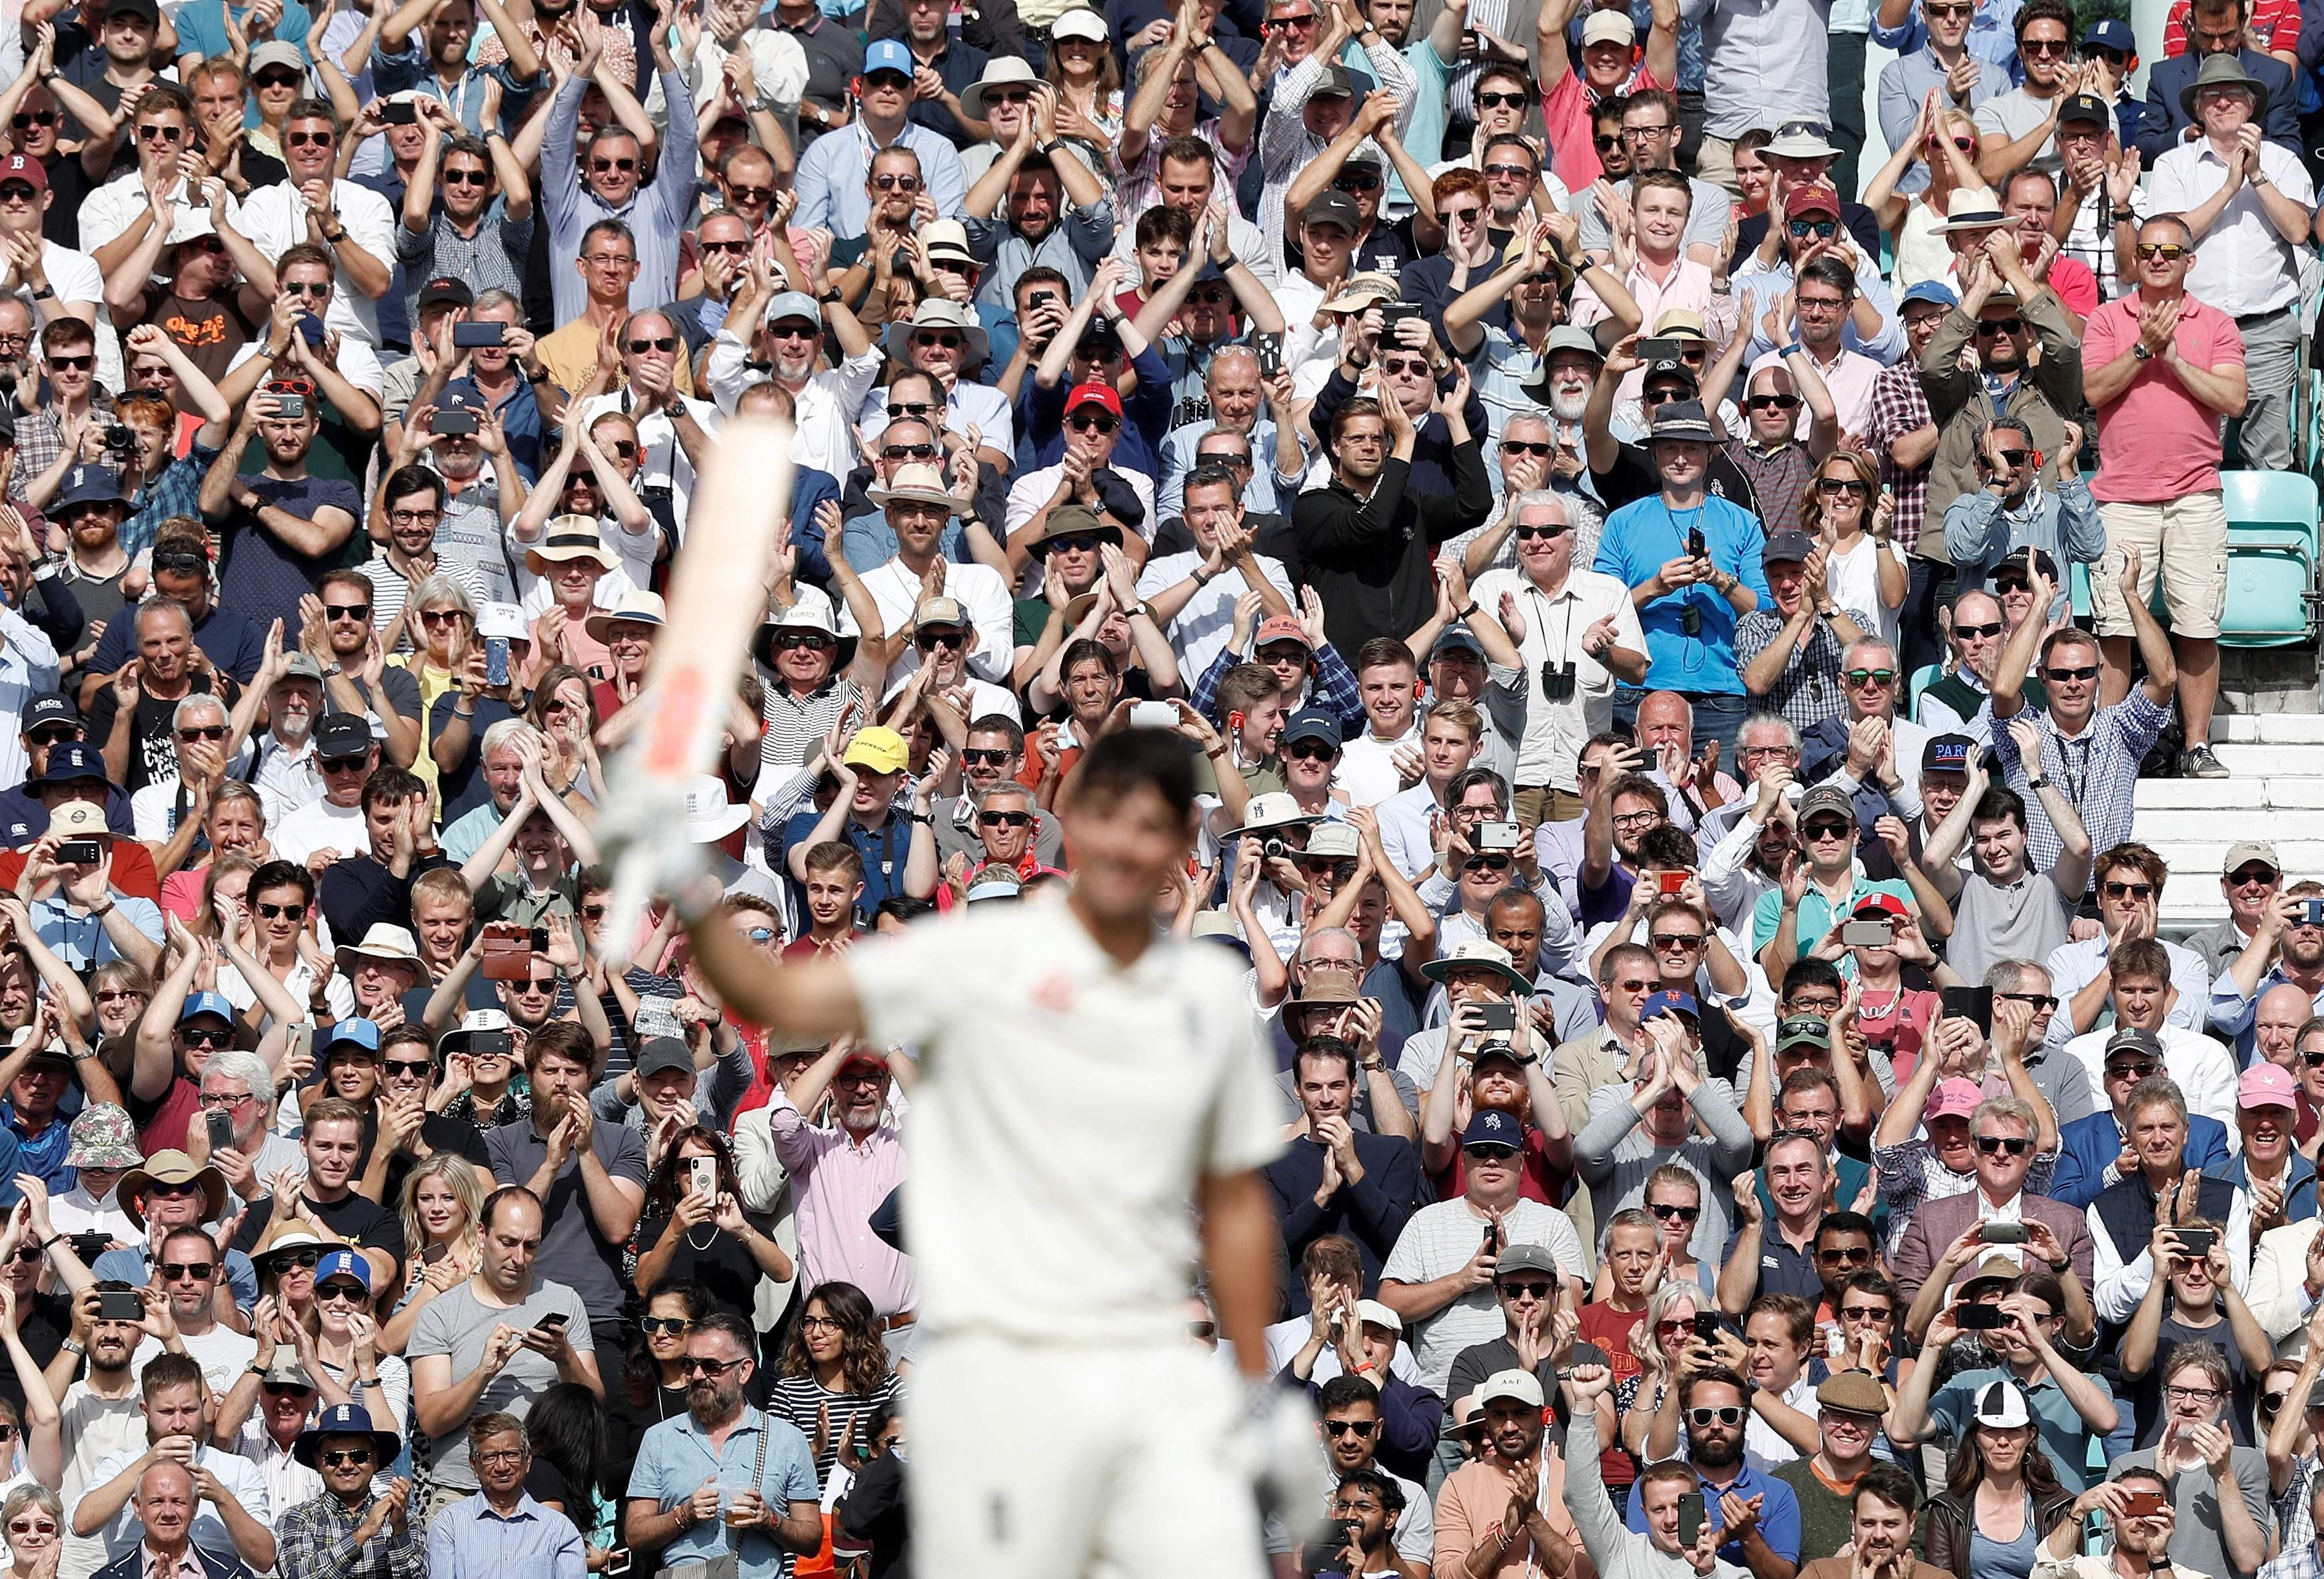 The Oval crowd cheered and sang his name throughout the day but he could only soak in one applause